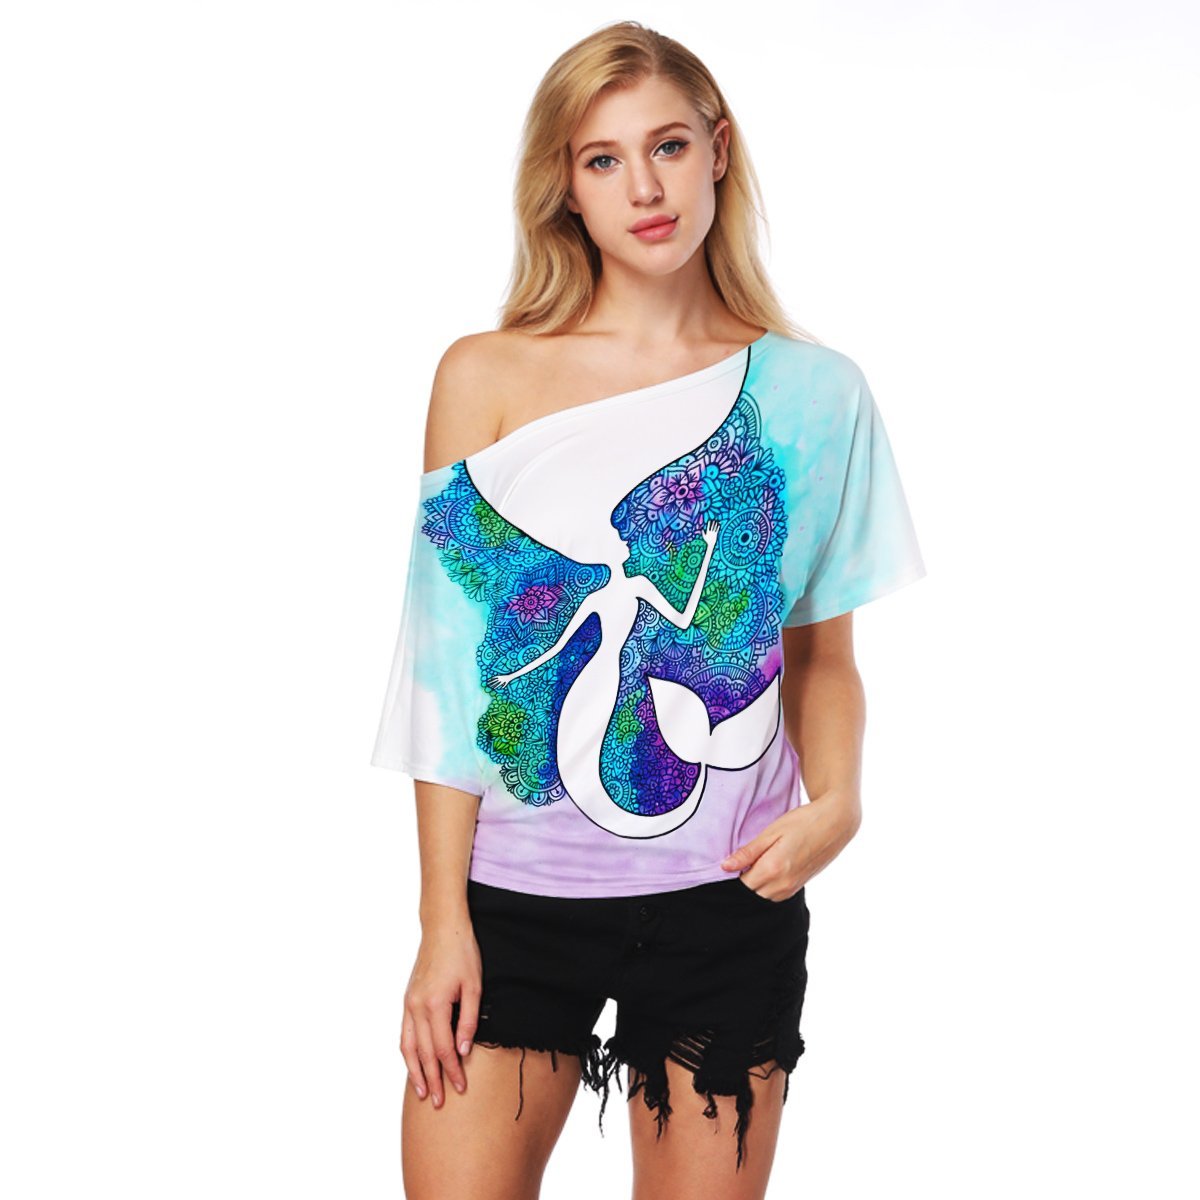 Women's Off Shoulder Short Sleeve Loose Fit Batwing Print T Shirts Tops Blouses (Mermaid 003, S)